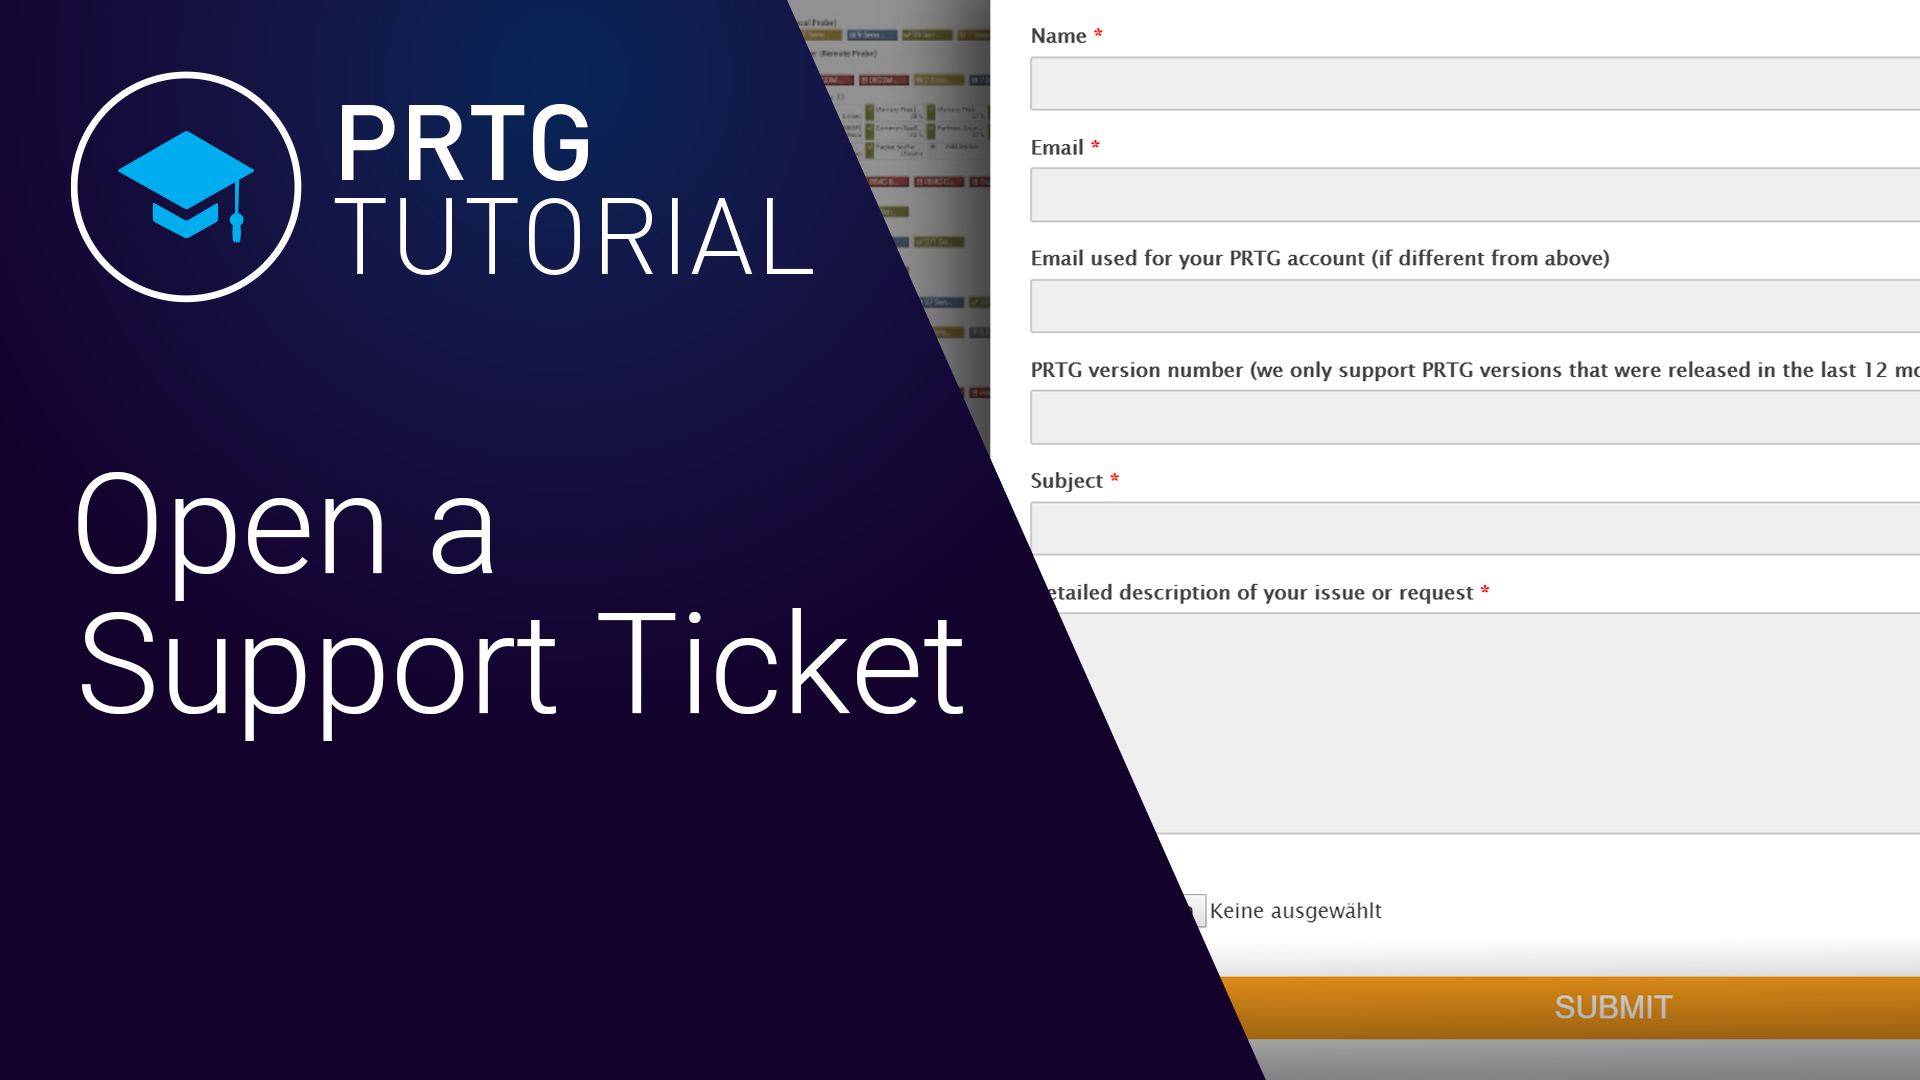 COMMENT OUVRIR UN TICKET SUPPORT (Videos, Tickets)